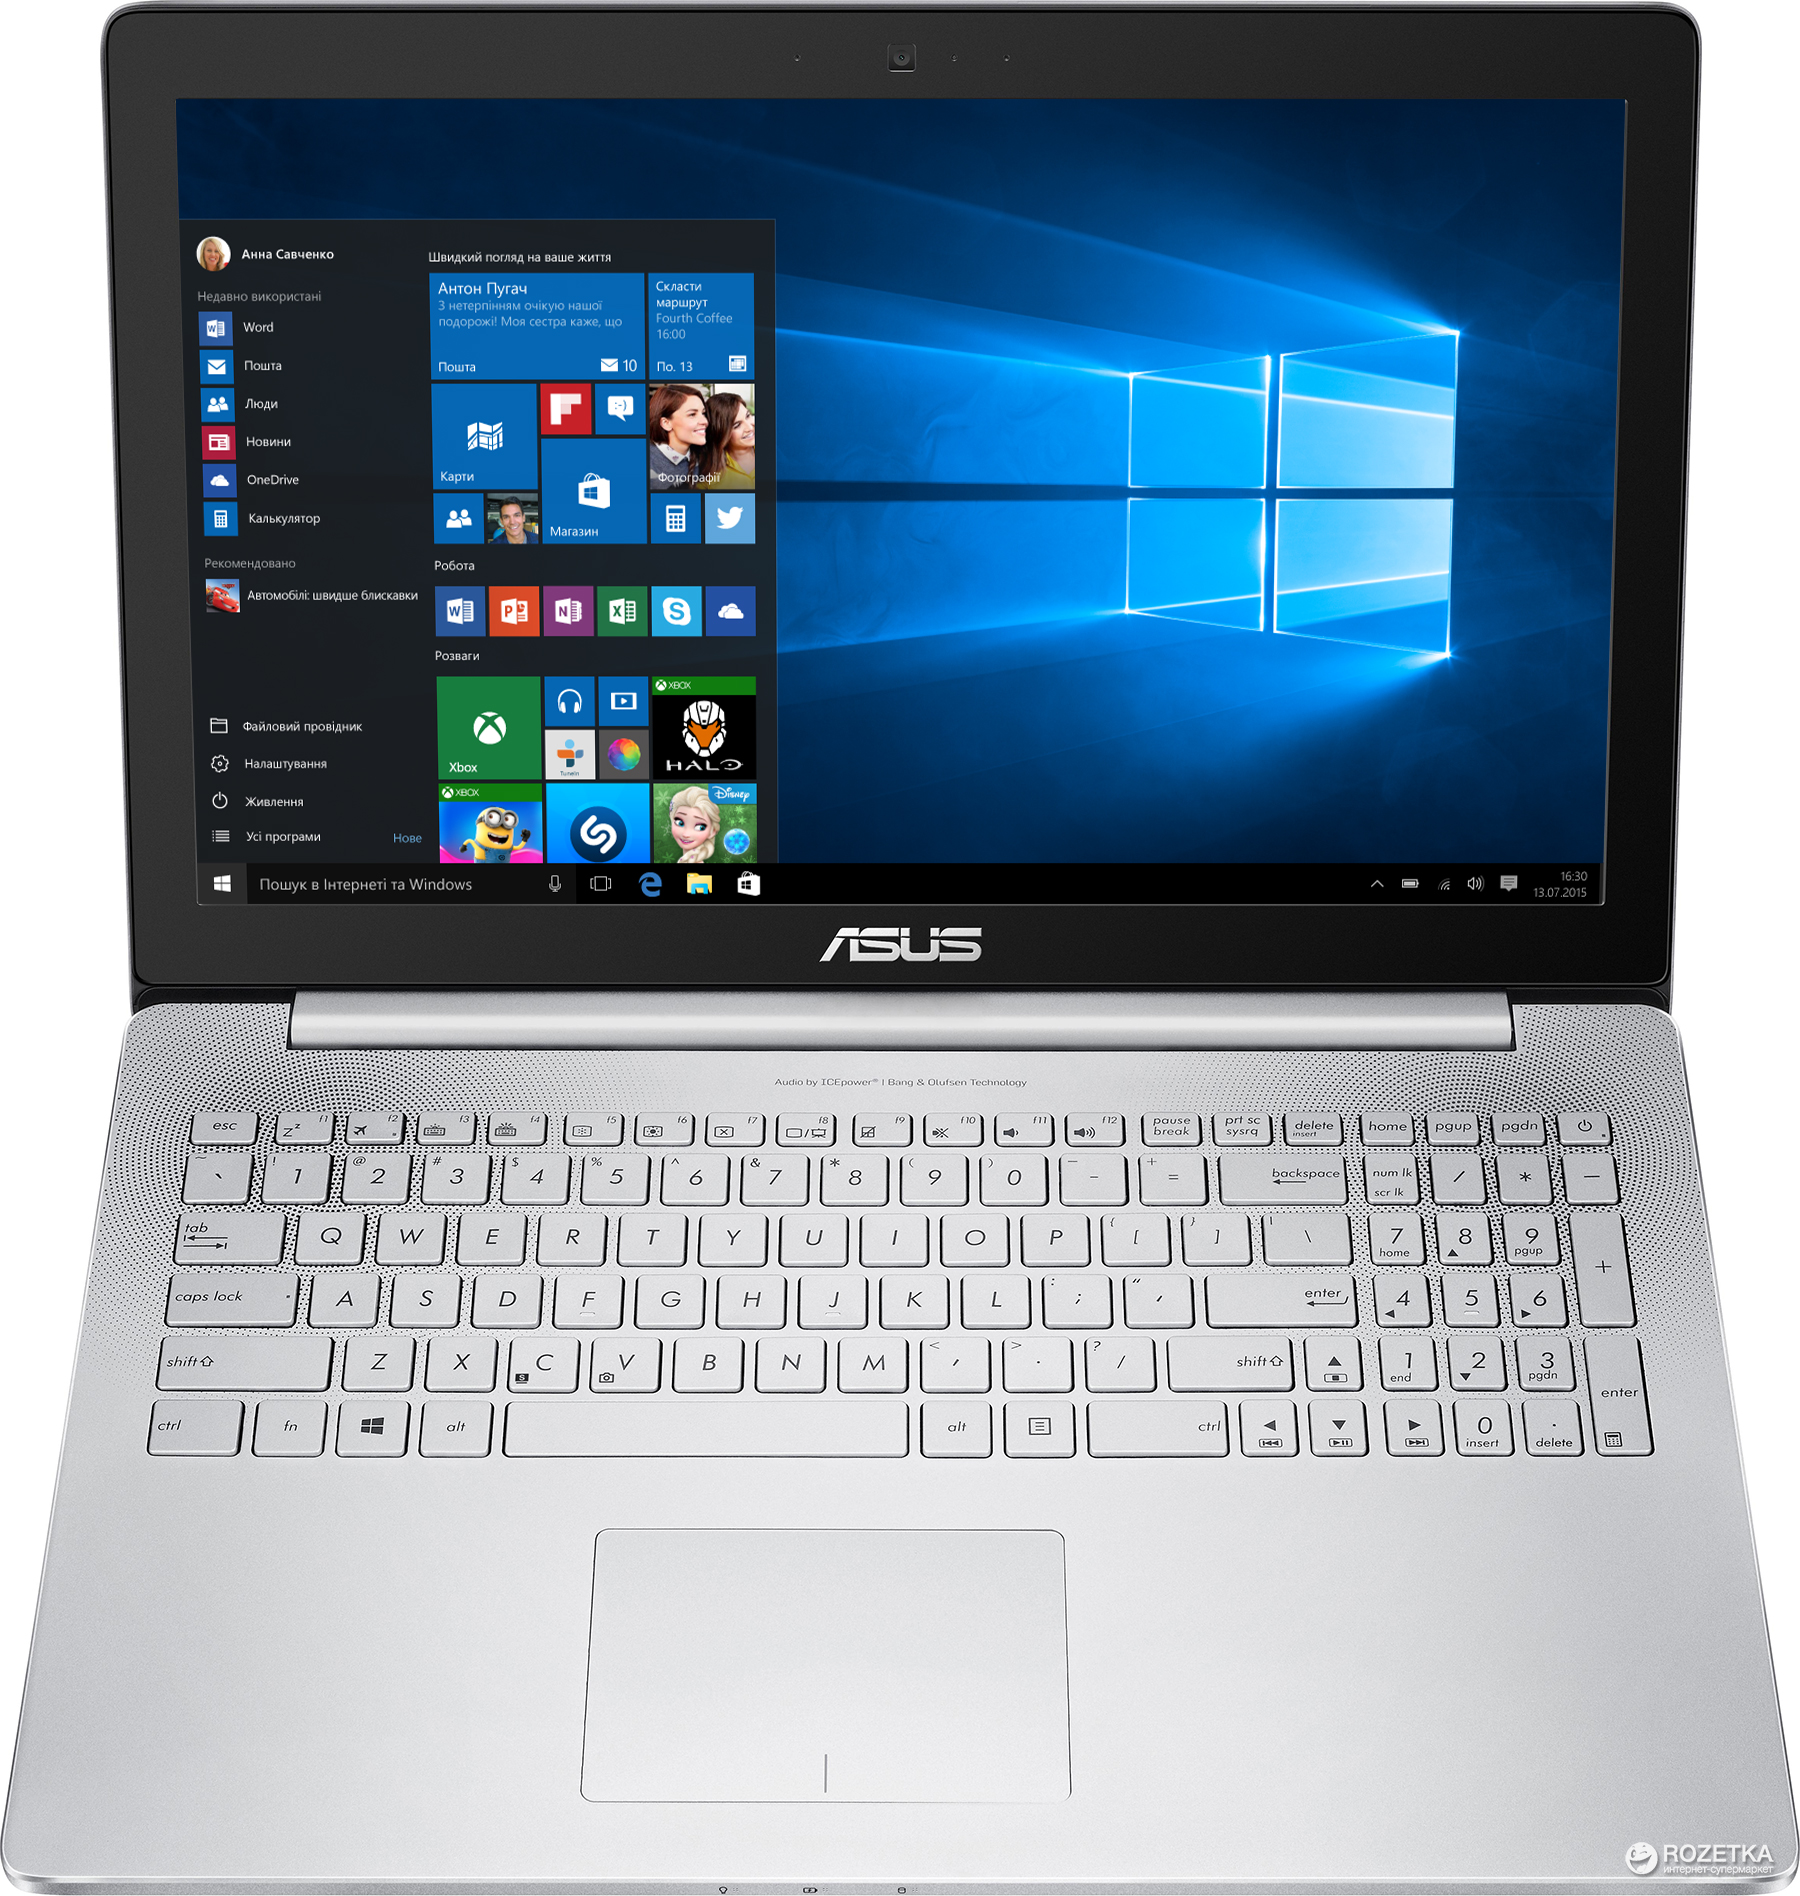 ASUS ZenBook Pro UX501 Smart Gesture Drivers for Windows 10